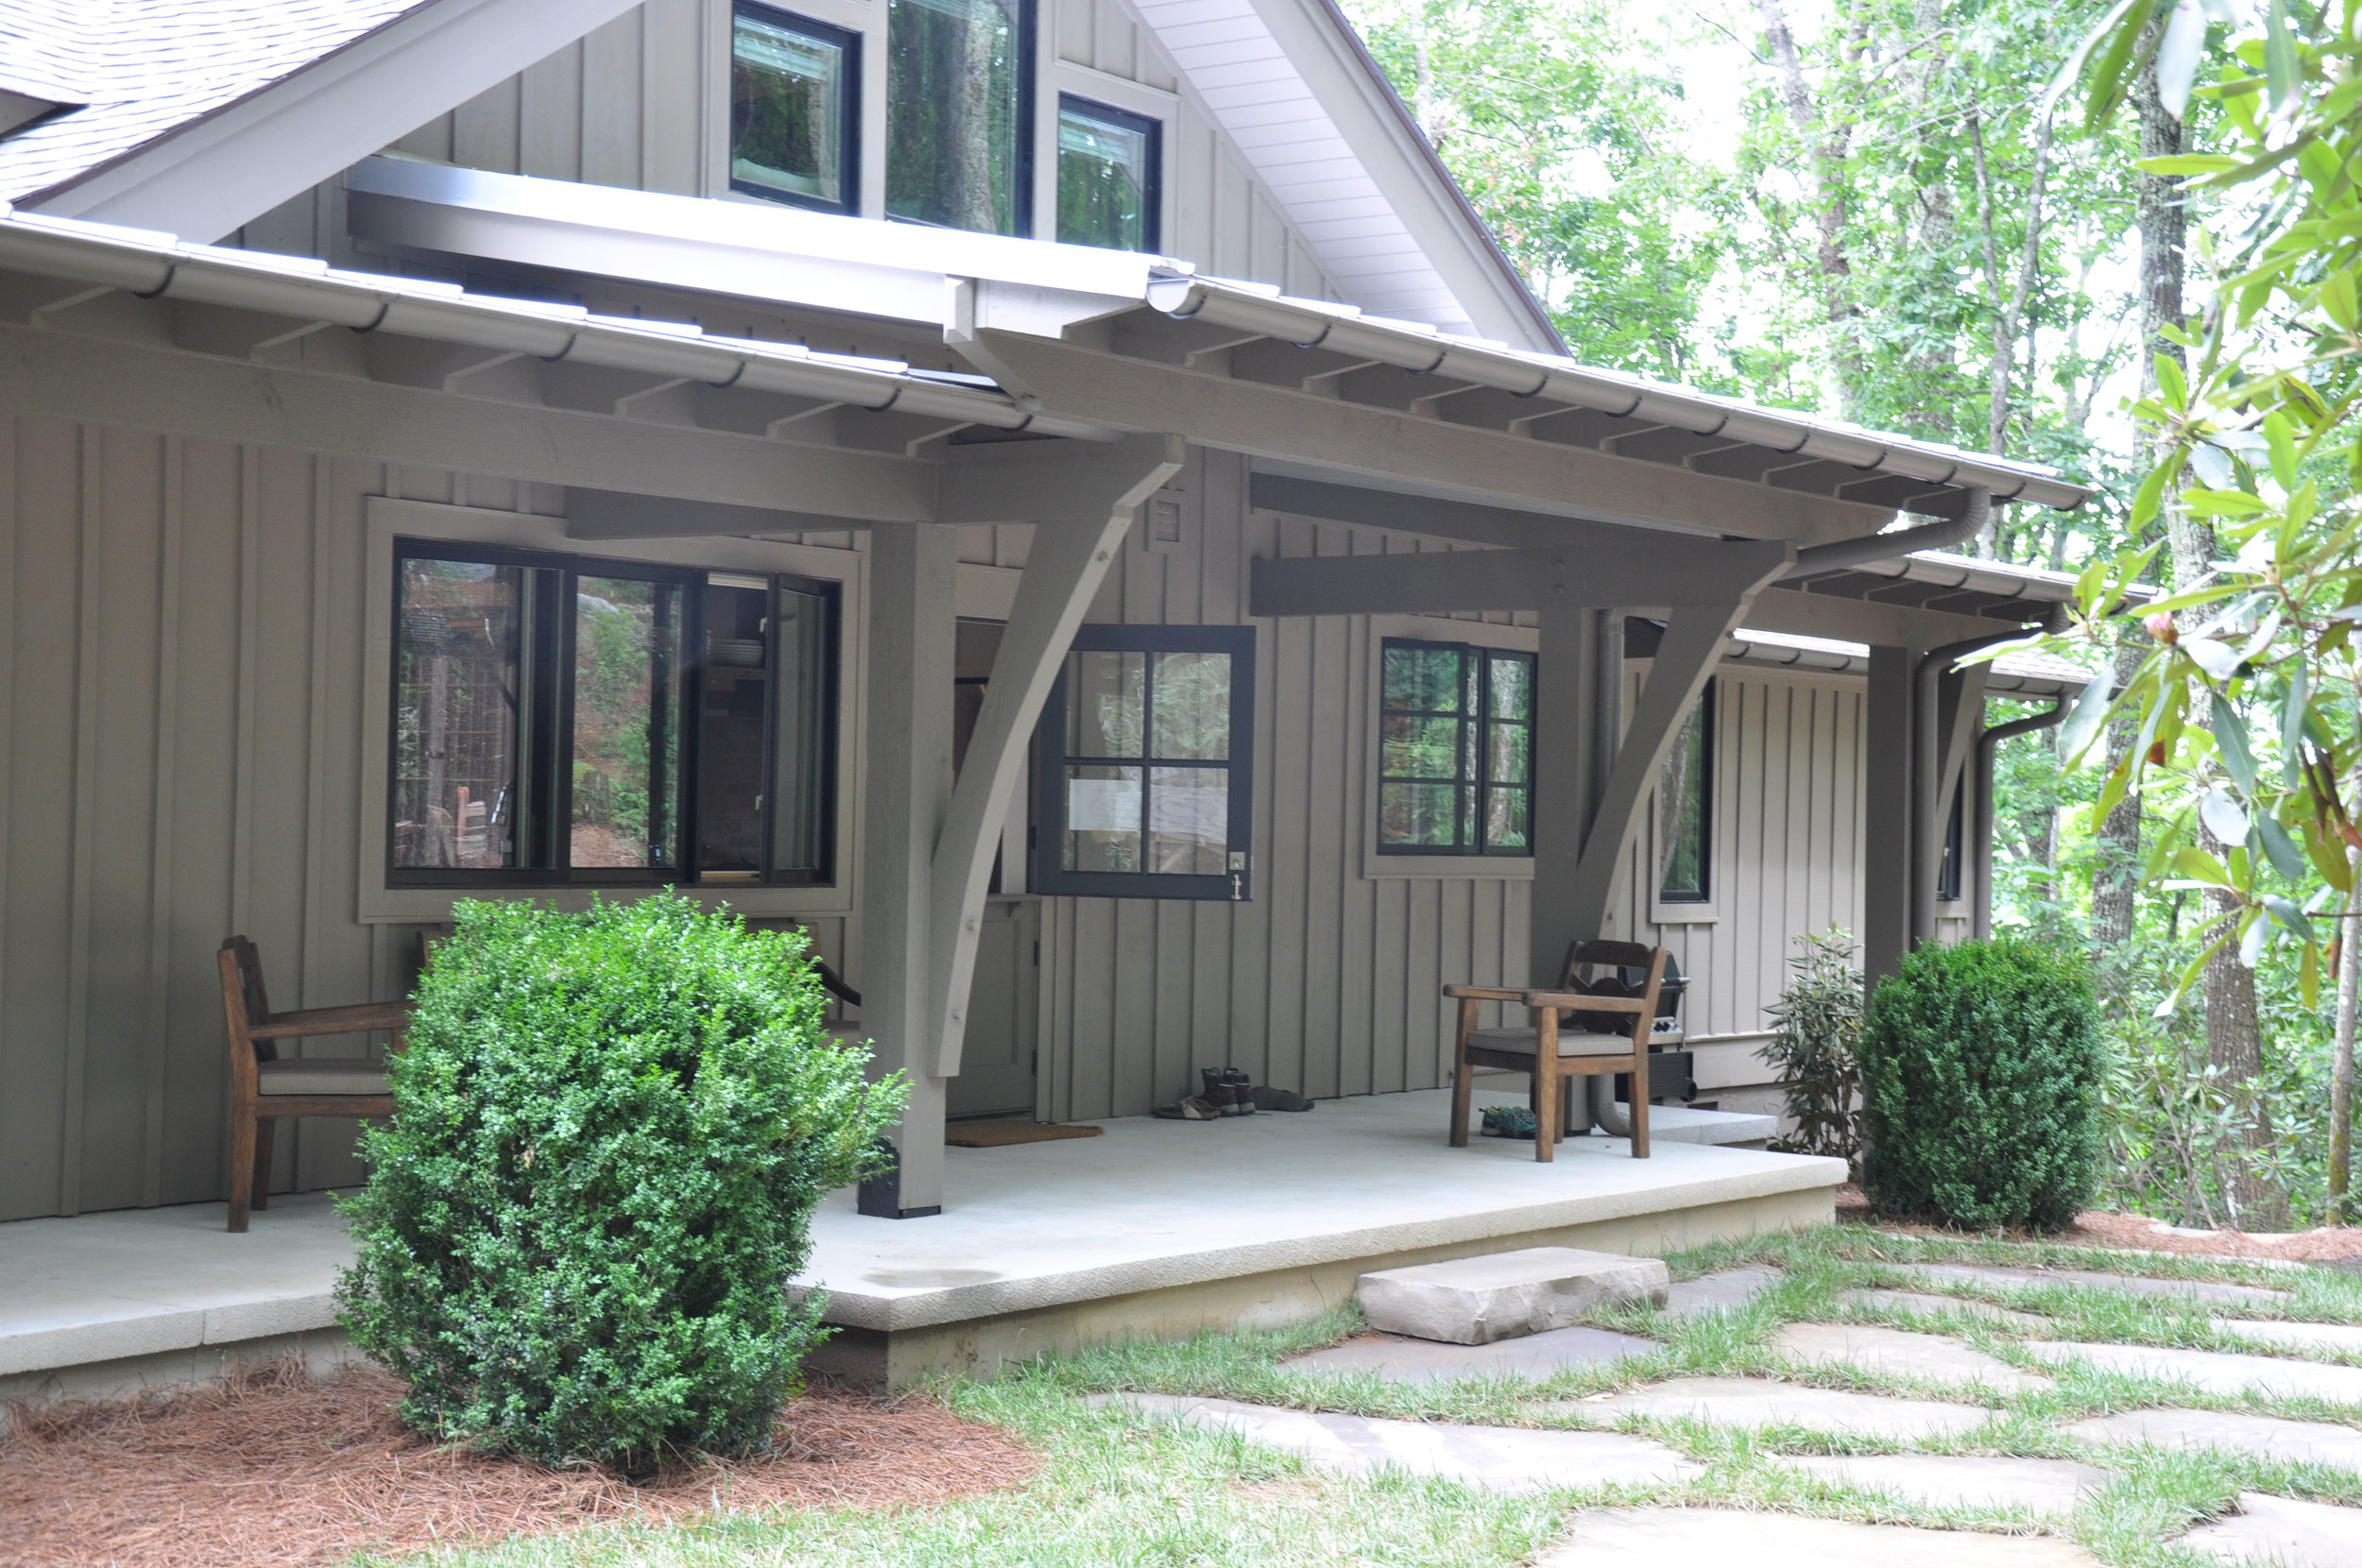 new covered front porch is one of owner's favorite spaces.